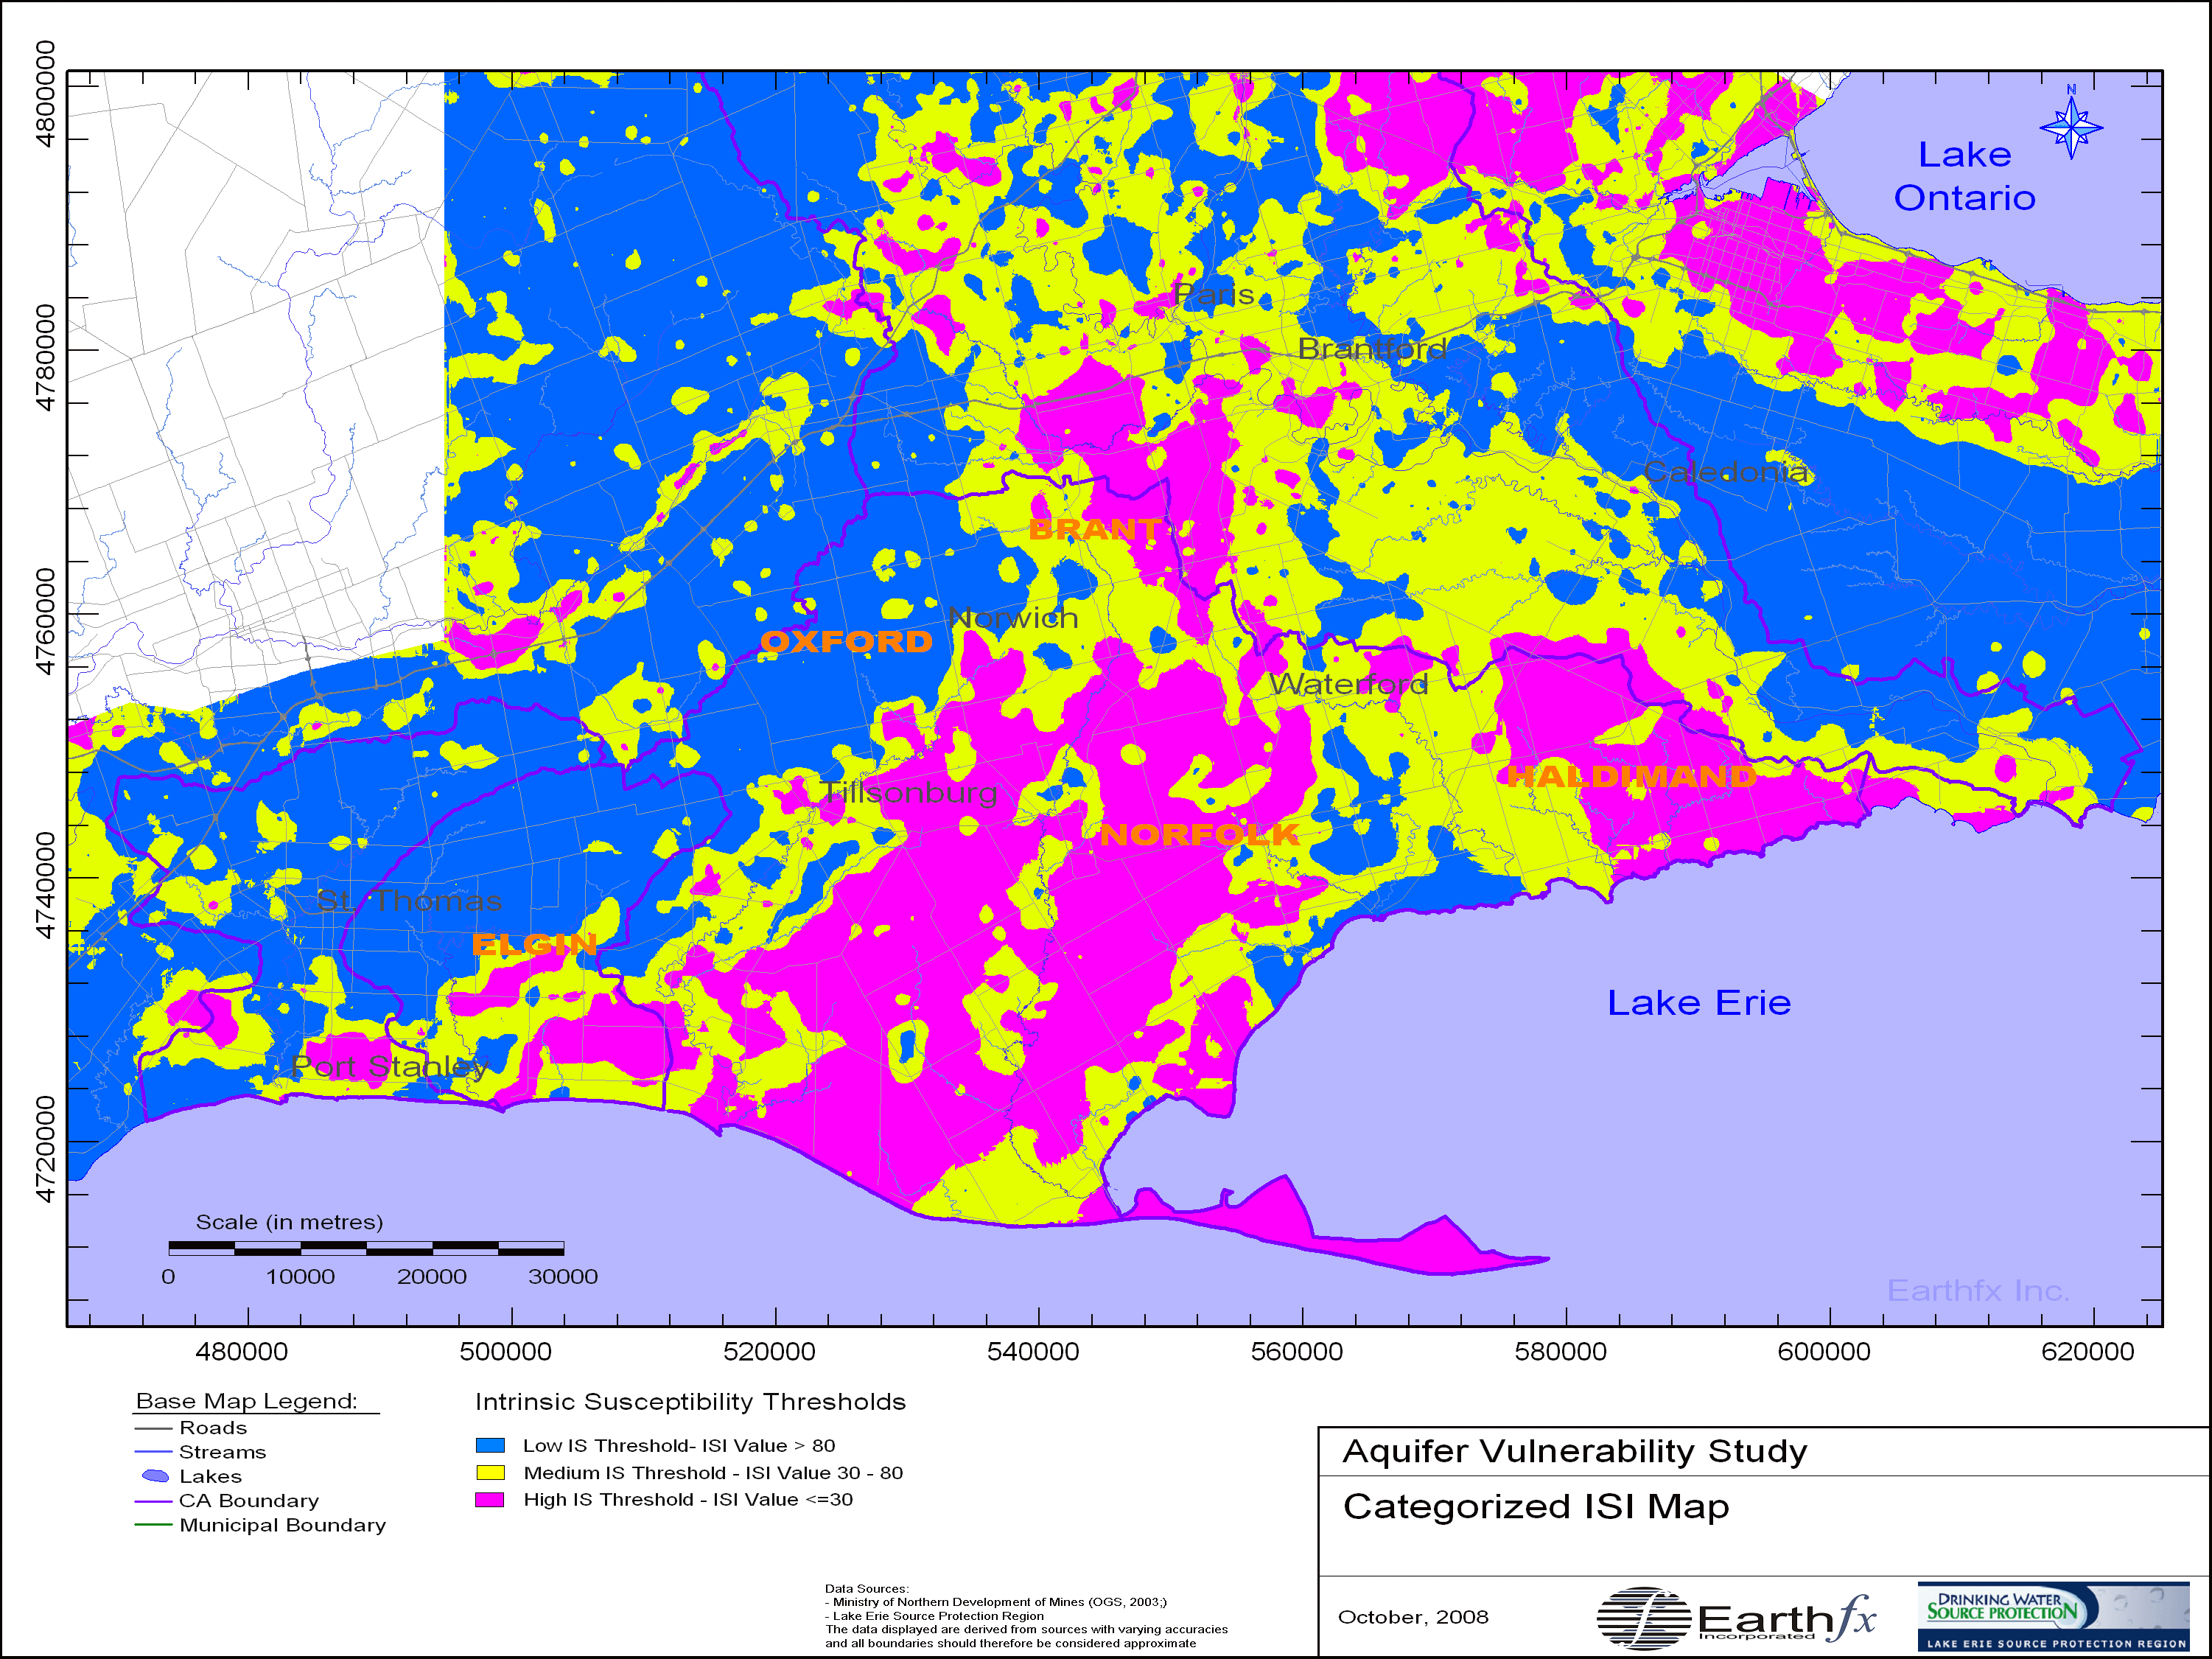 Aquifer Vulnerability Mapping for the Lake Erie Source Protection Region